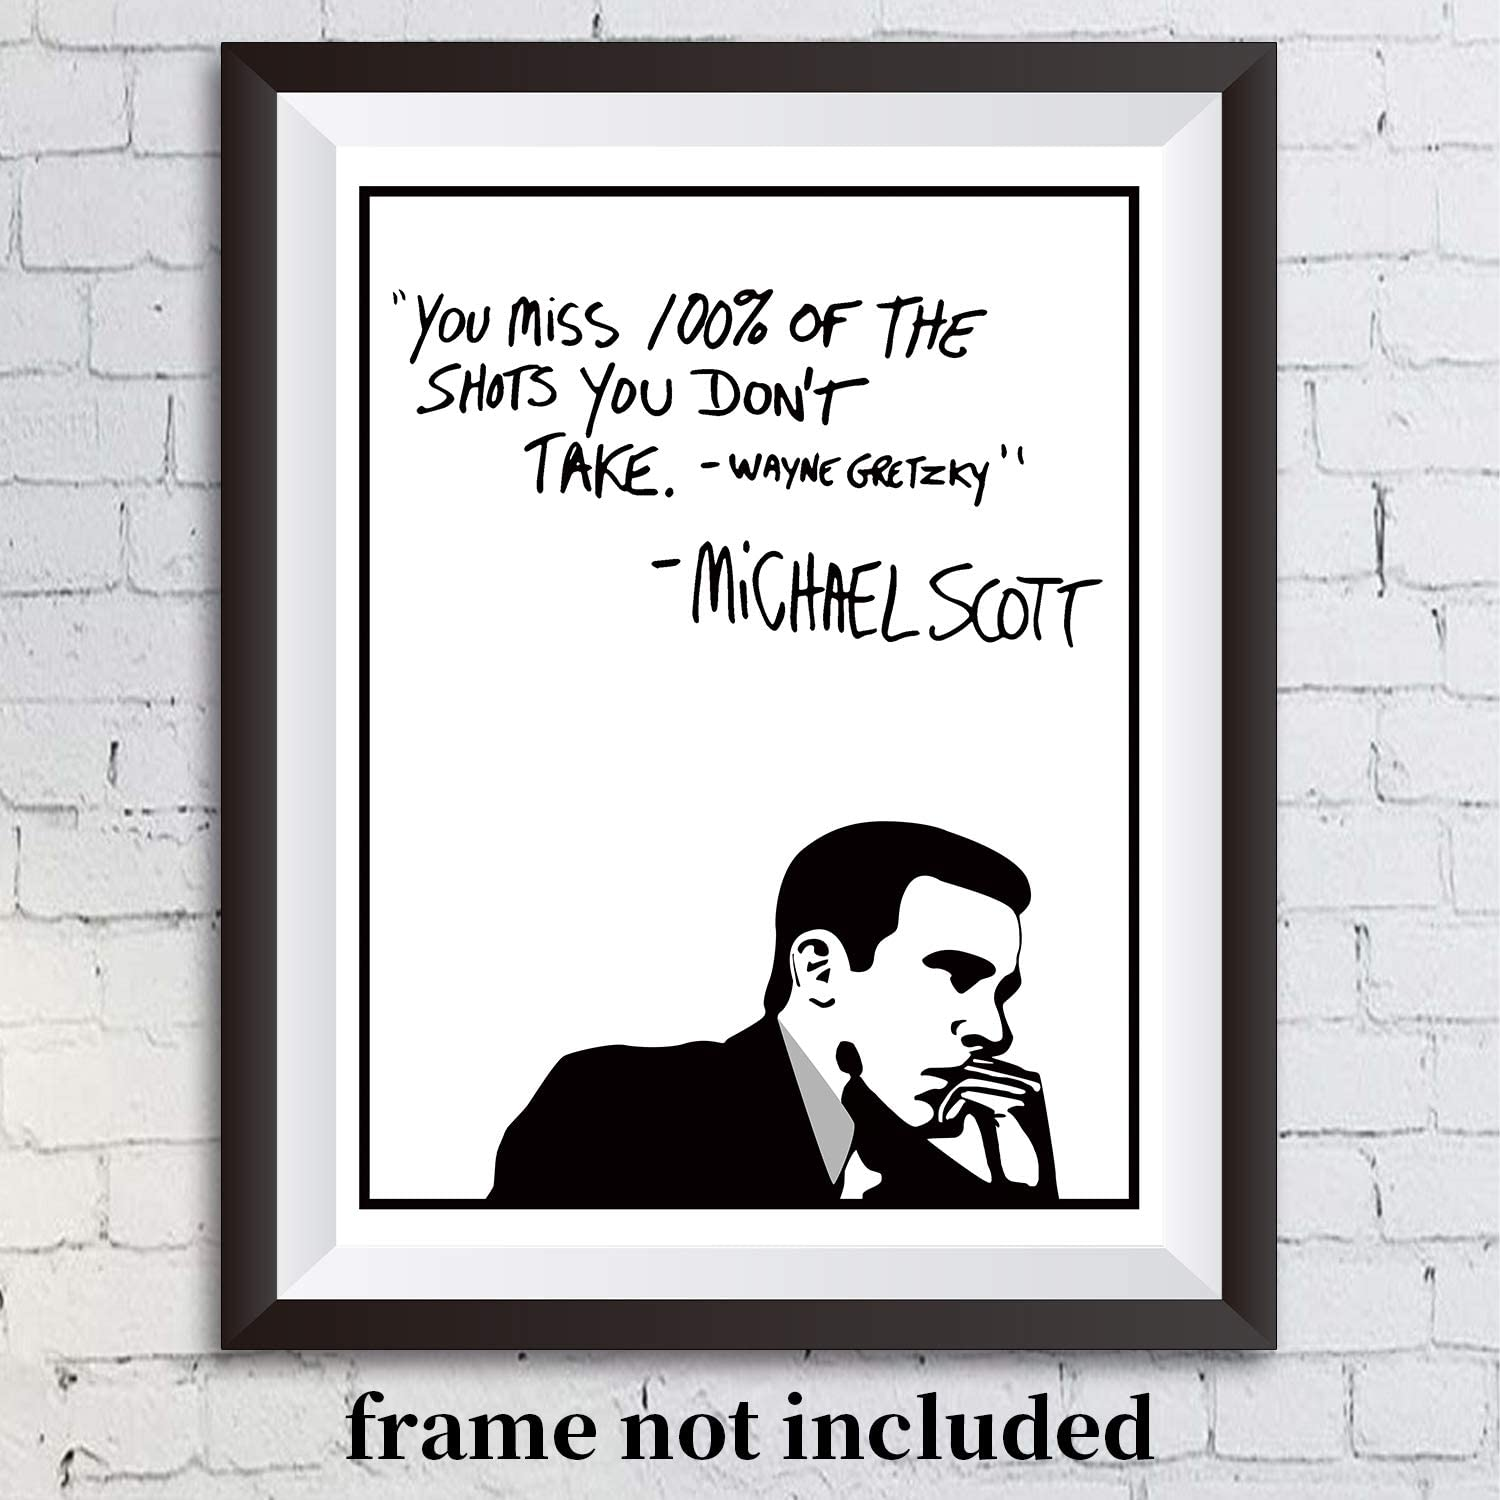 "Michael Scott Motivational Quote Poster -Wayne Gretzky Funny Poster 11x14 Unframed Print Art- You Miss 100% Of The Shots You Dont Take""- Great Gift For Fans Of The Office TV Show"